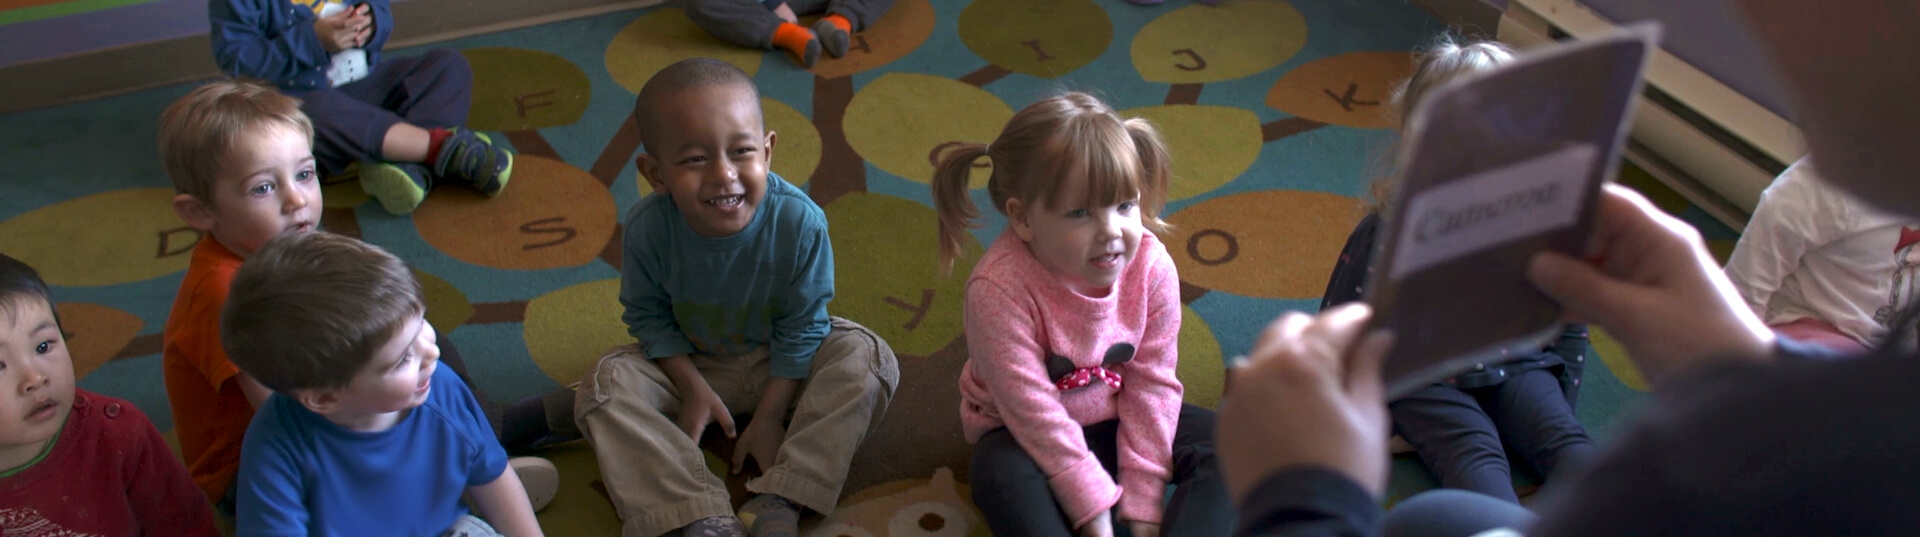 Children sitting on a carpet during circle time at a day care.